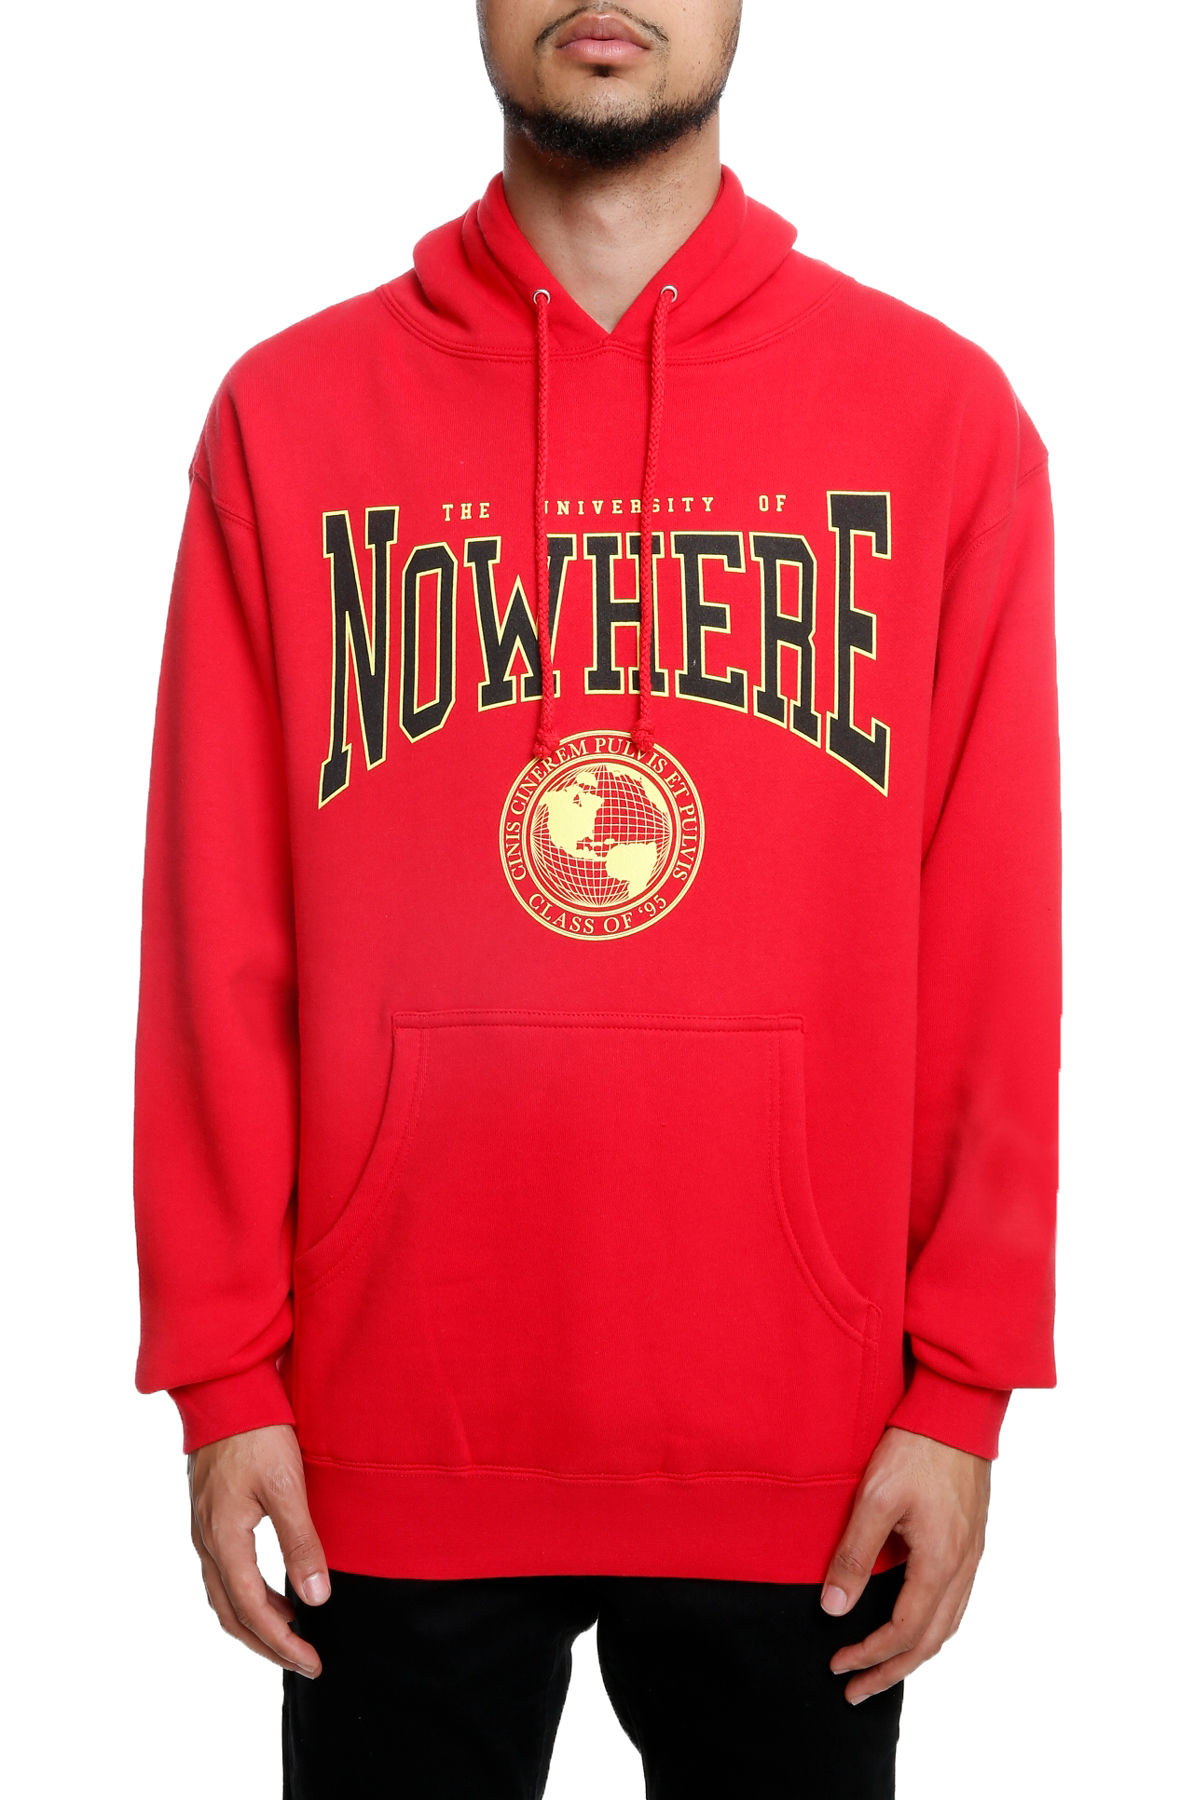 The Nowhere U Hoodie in Red